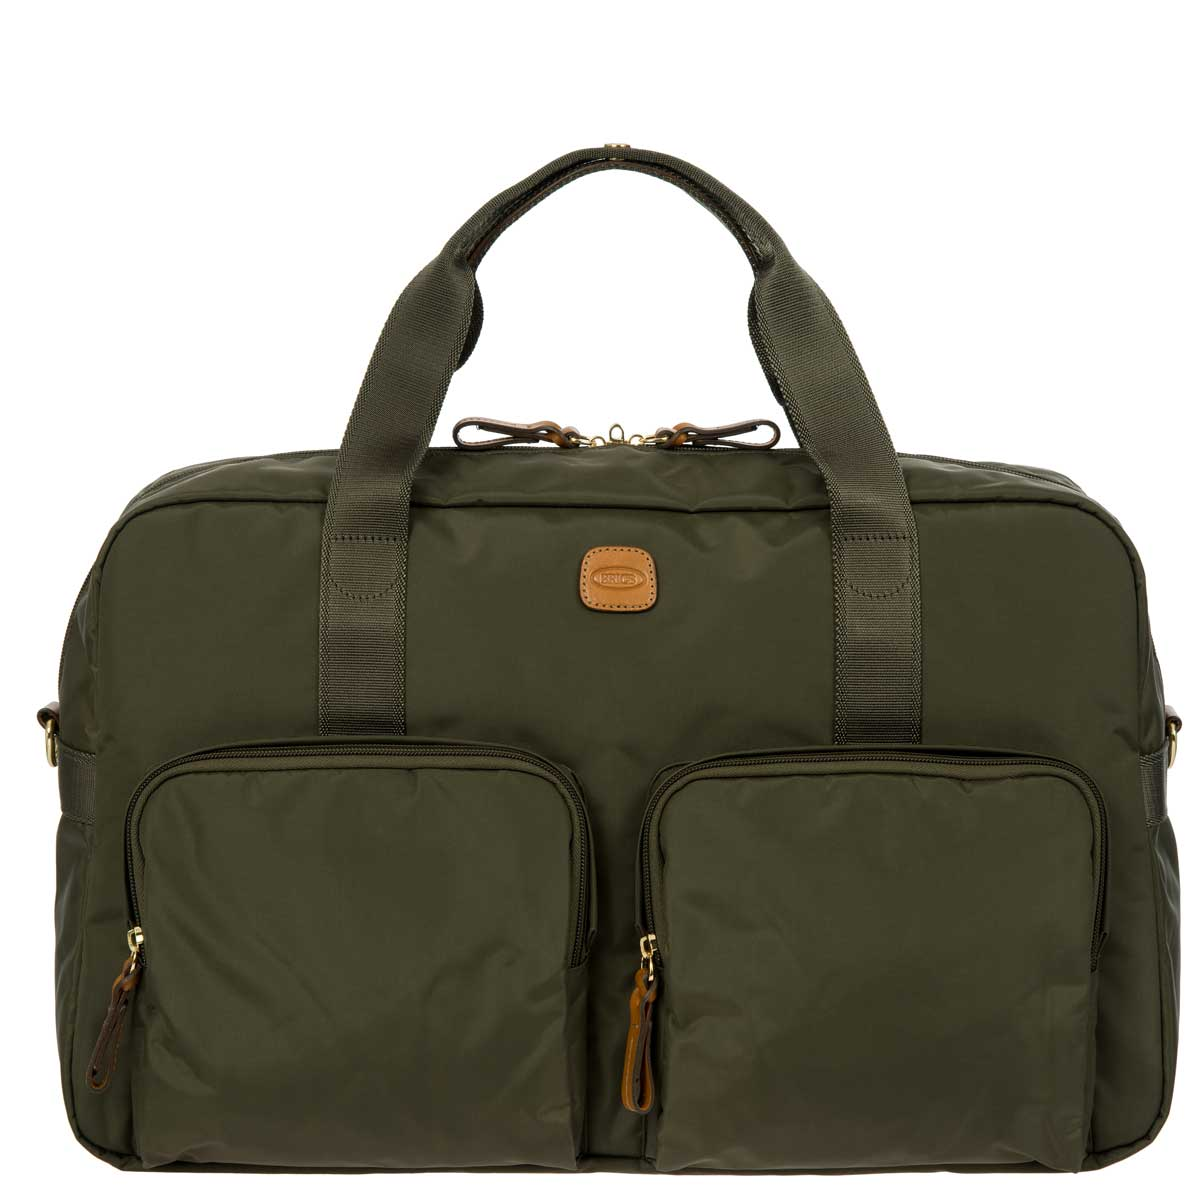 "X-Travel 18"" Boarding Duffle W/Pockets by Brics (Color: Olive)"